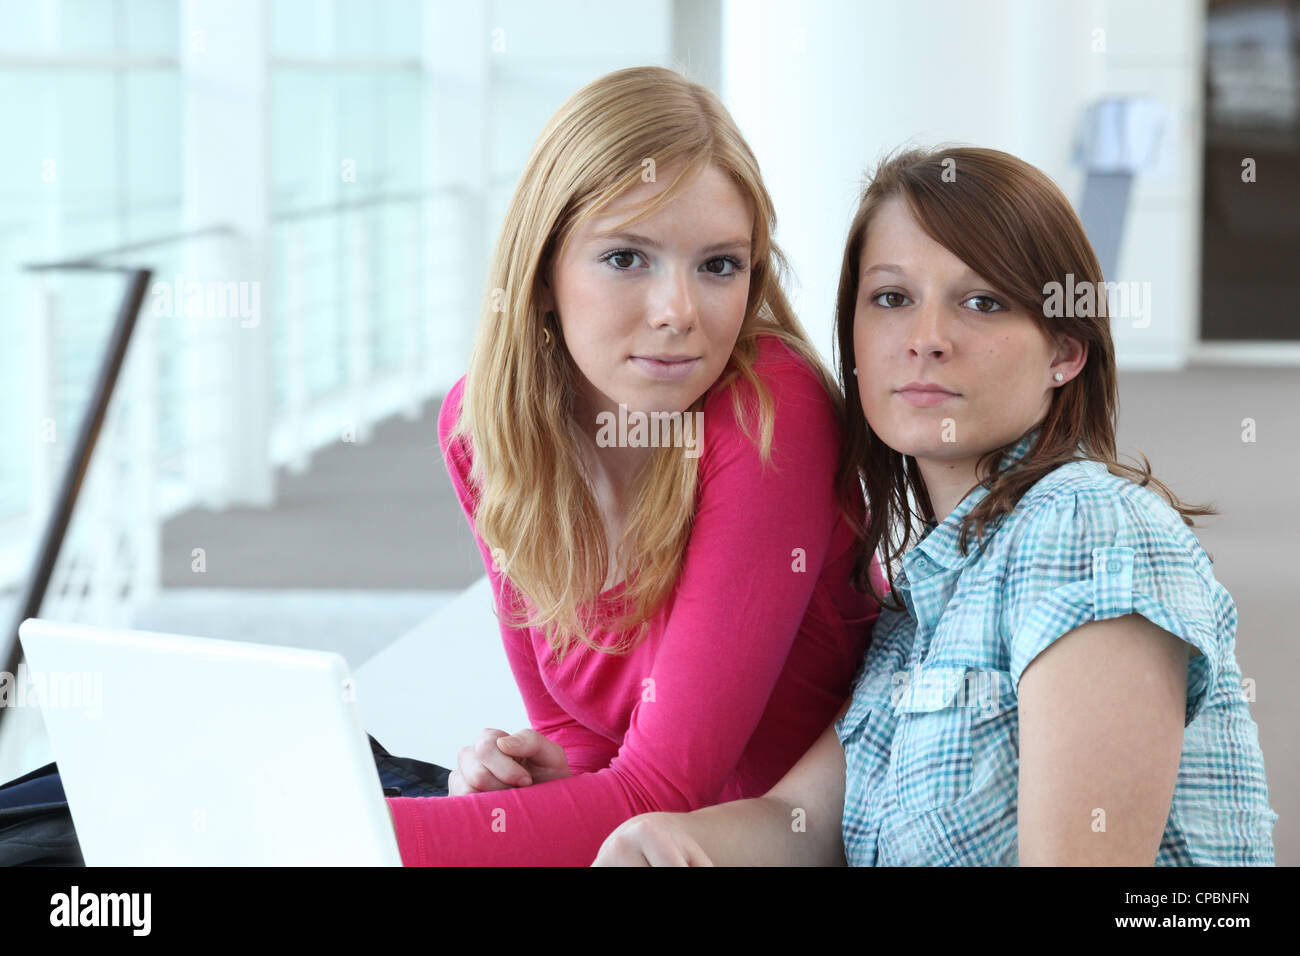 female duo in office - Stock Image